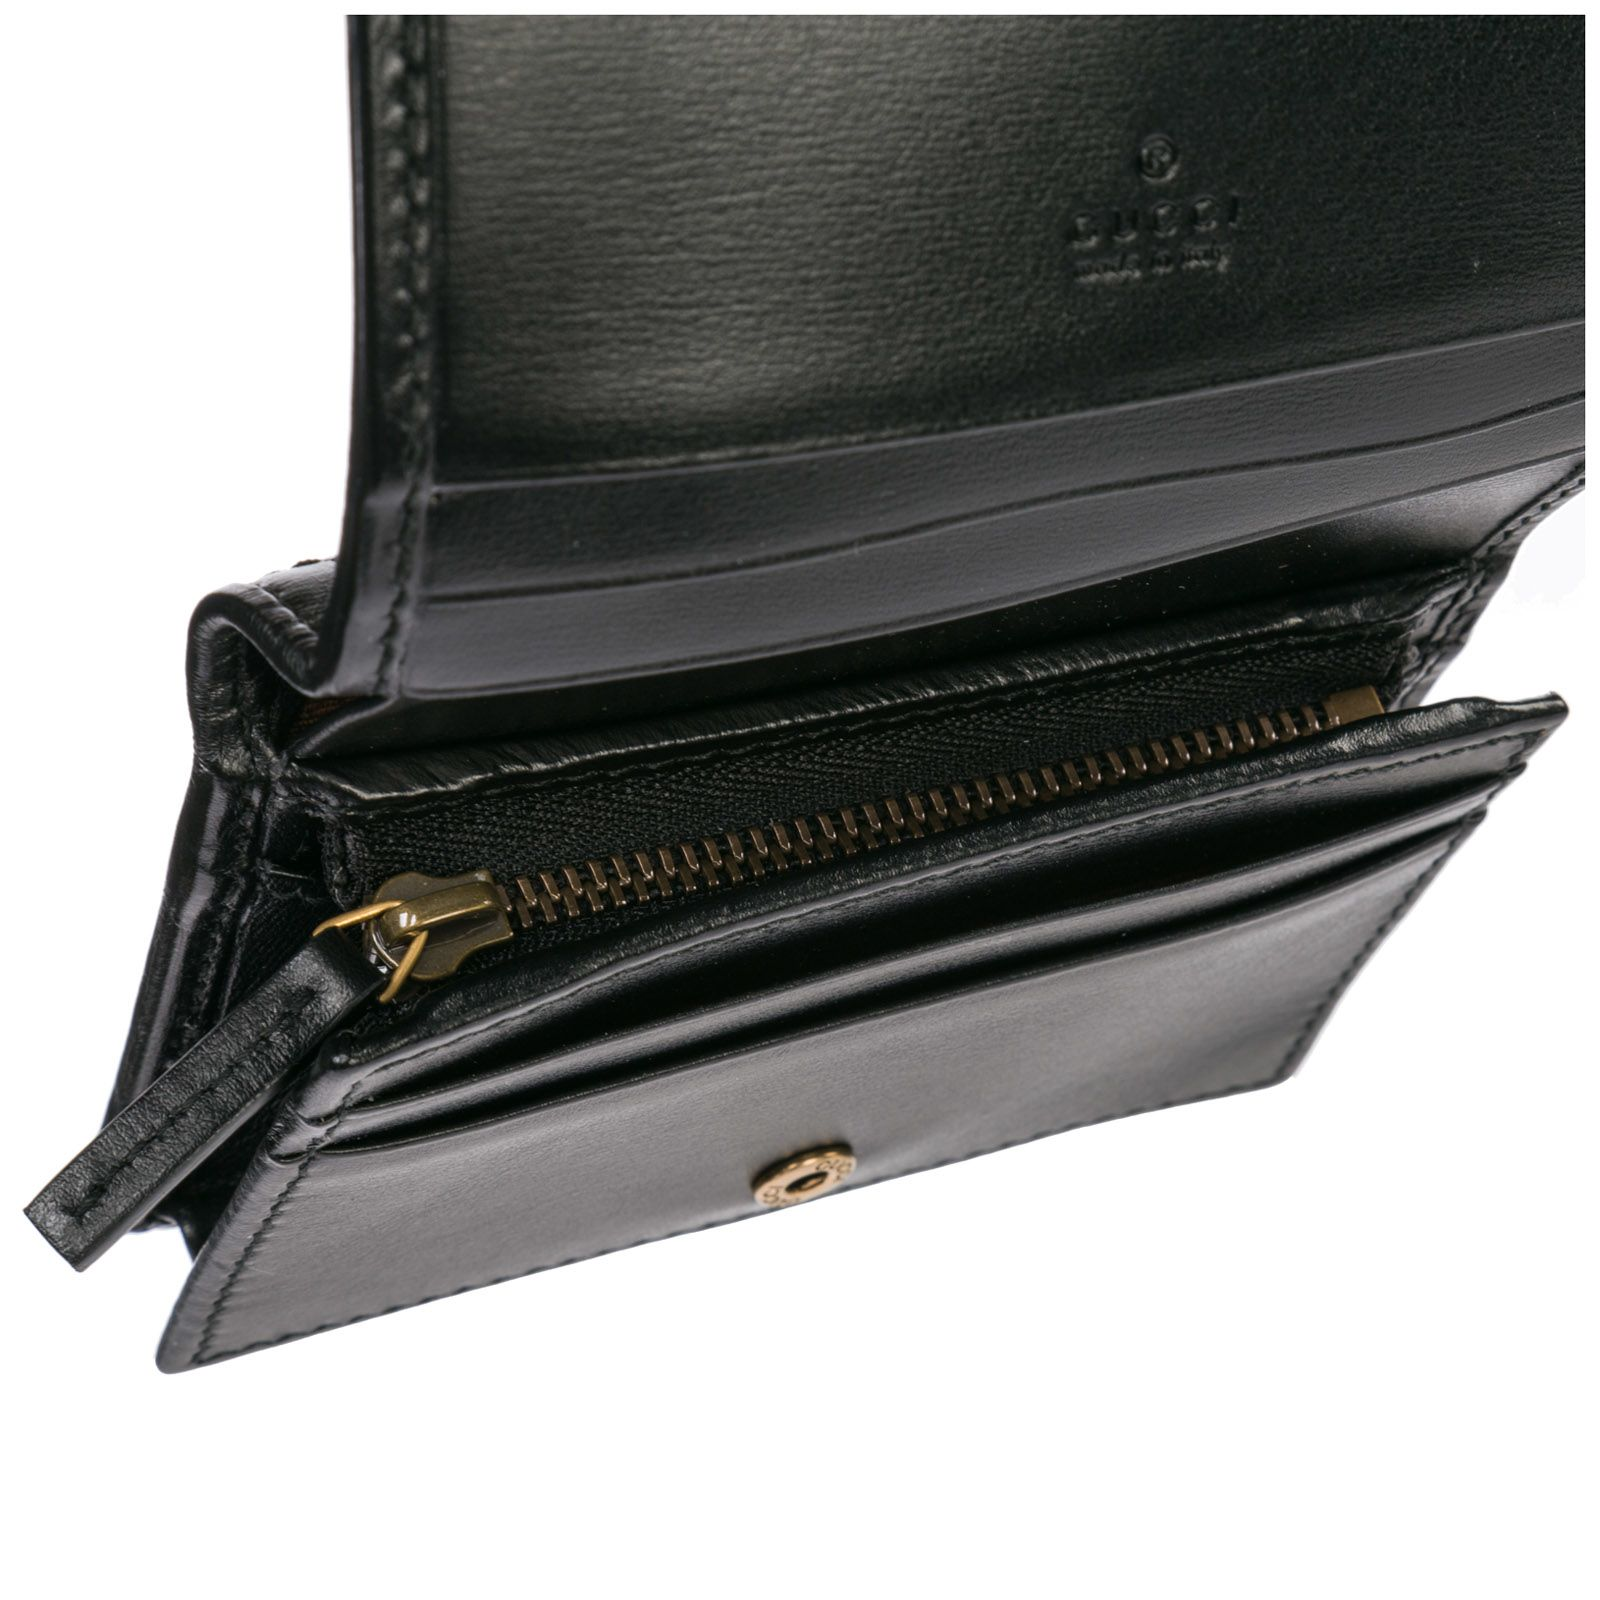 35e8d51293c ... Gucci Genuine Leather Credit Card Case Holder Wallet Doppia G - Black